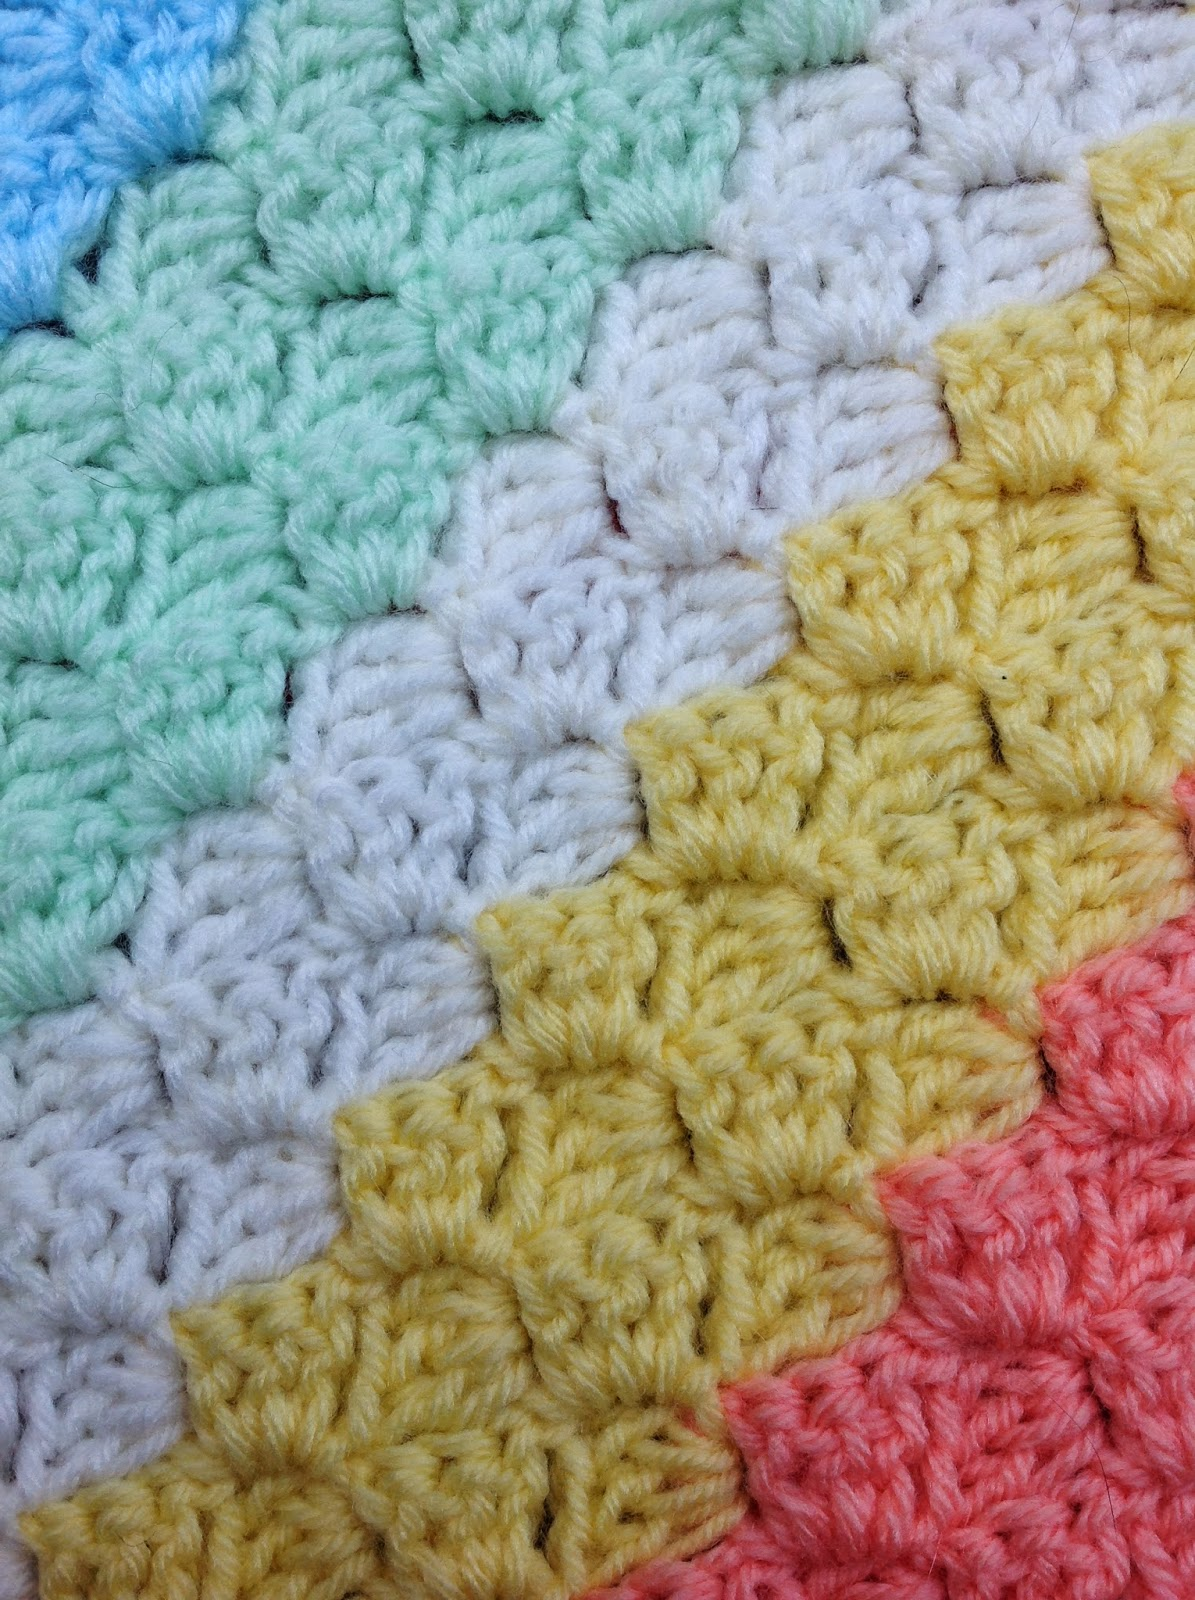 OYAs WORLD- Crochet-Knitting: Crochet: BOX STITCH - Diagonal or Straight.